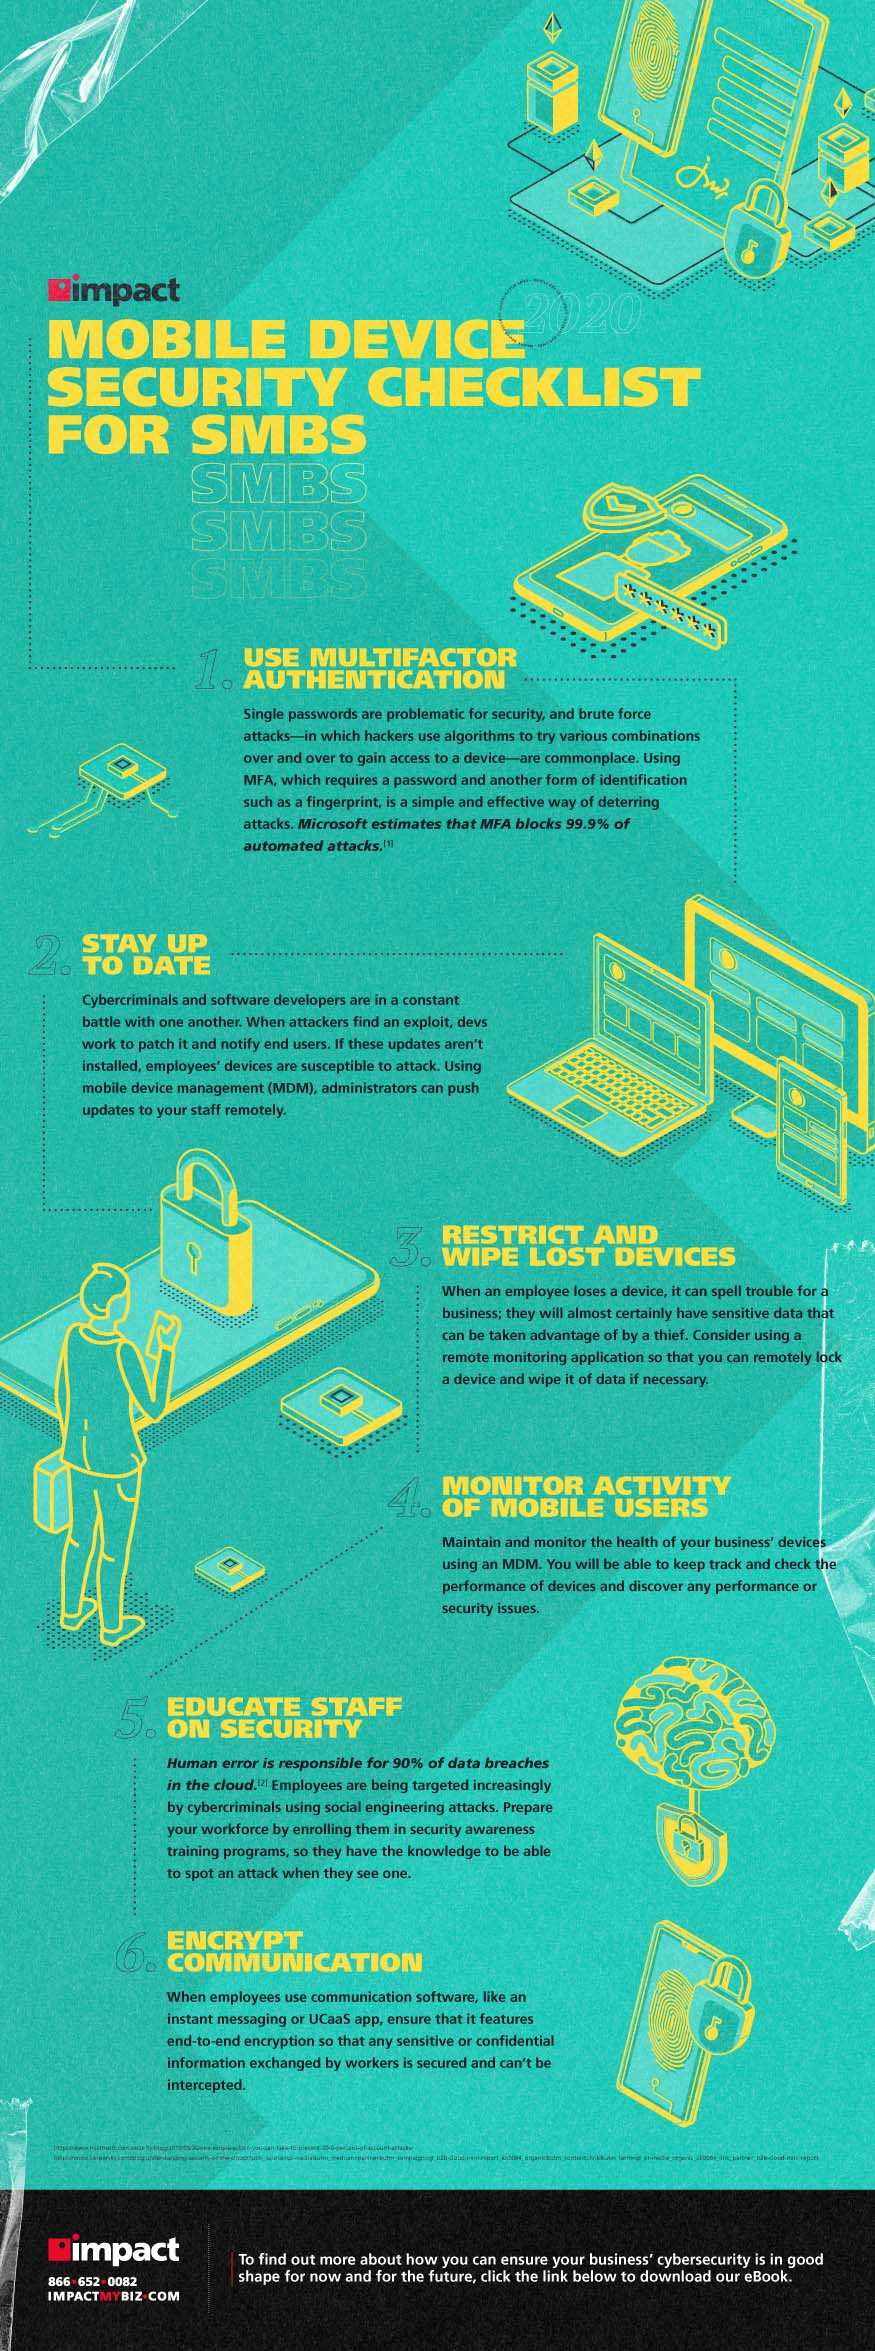 Infographic on mobile device security